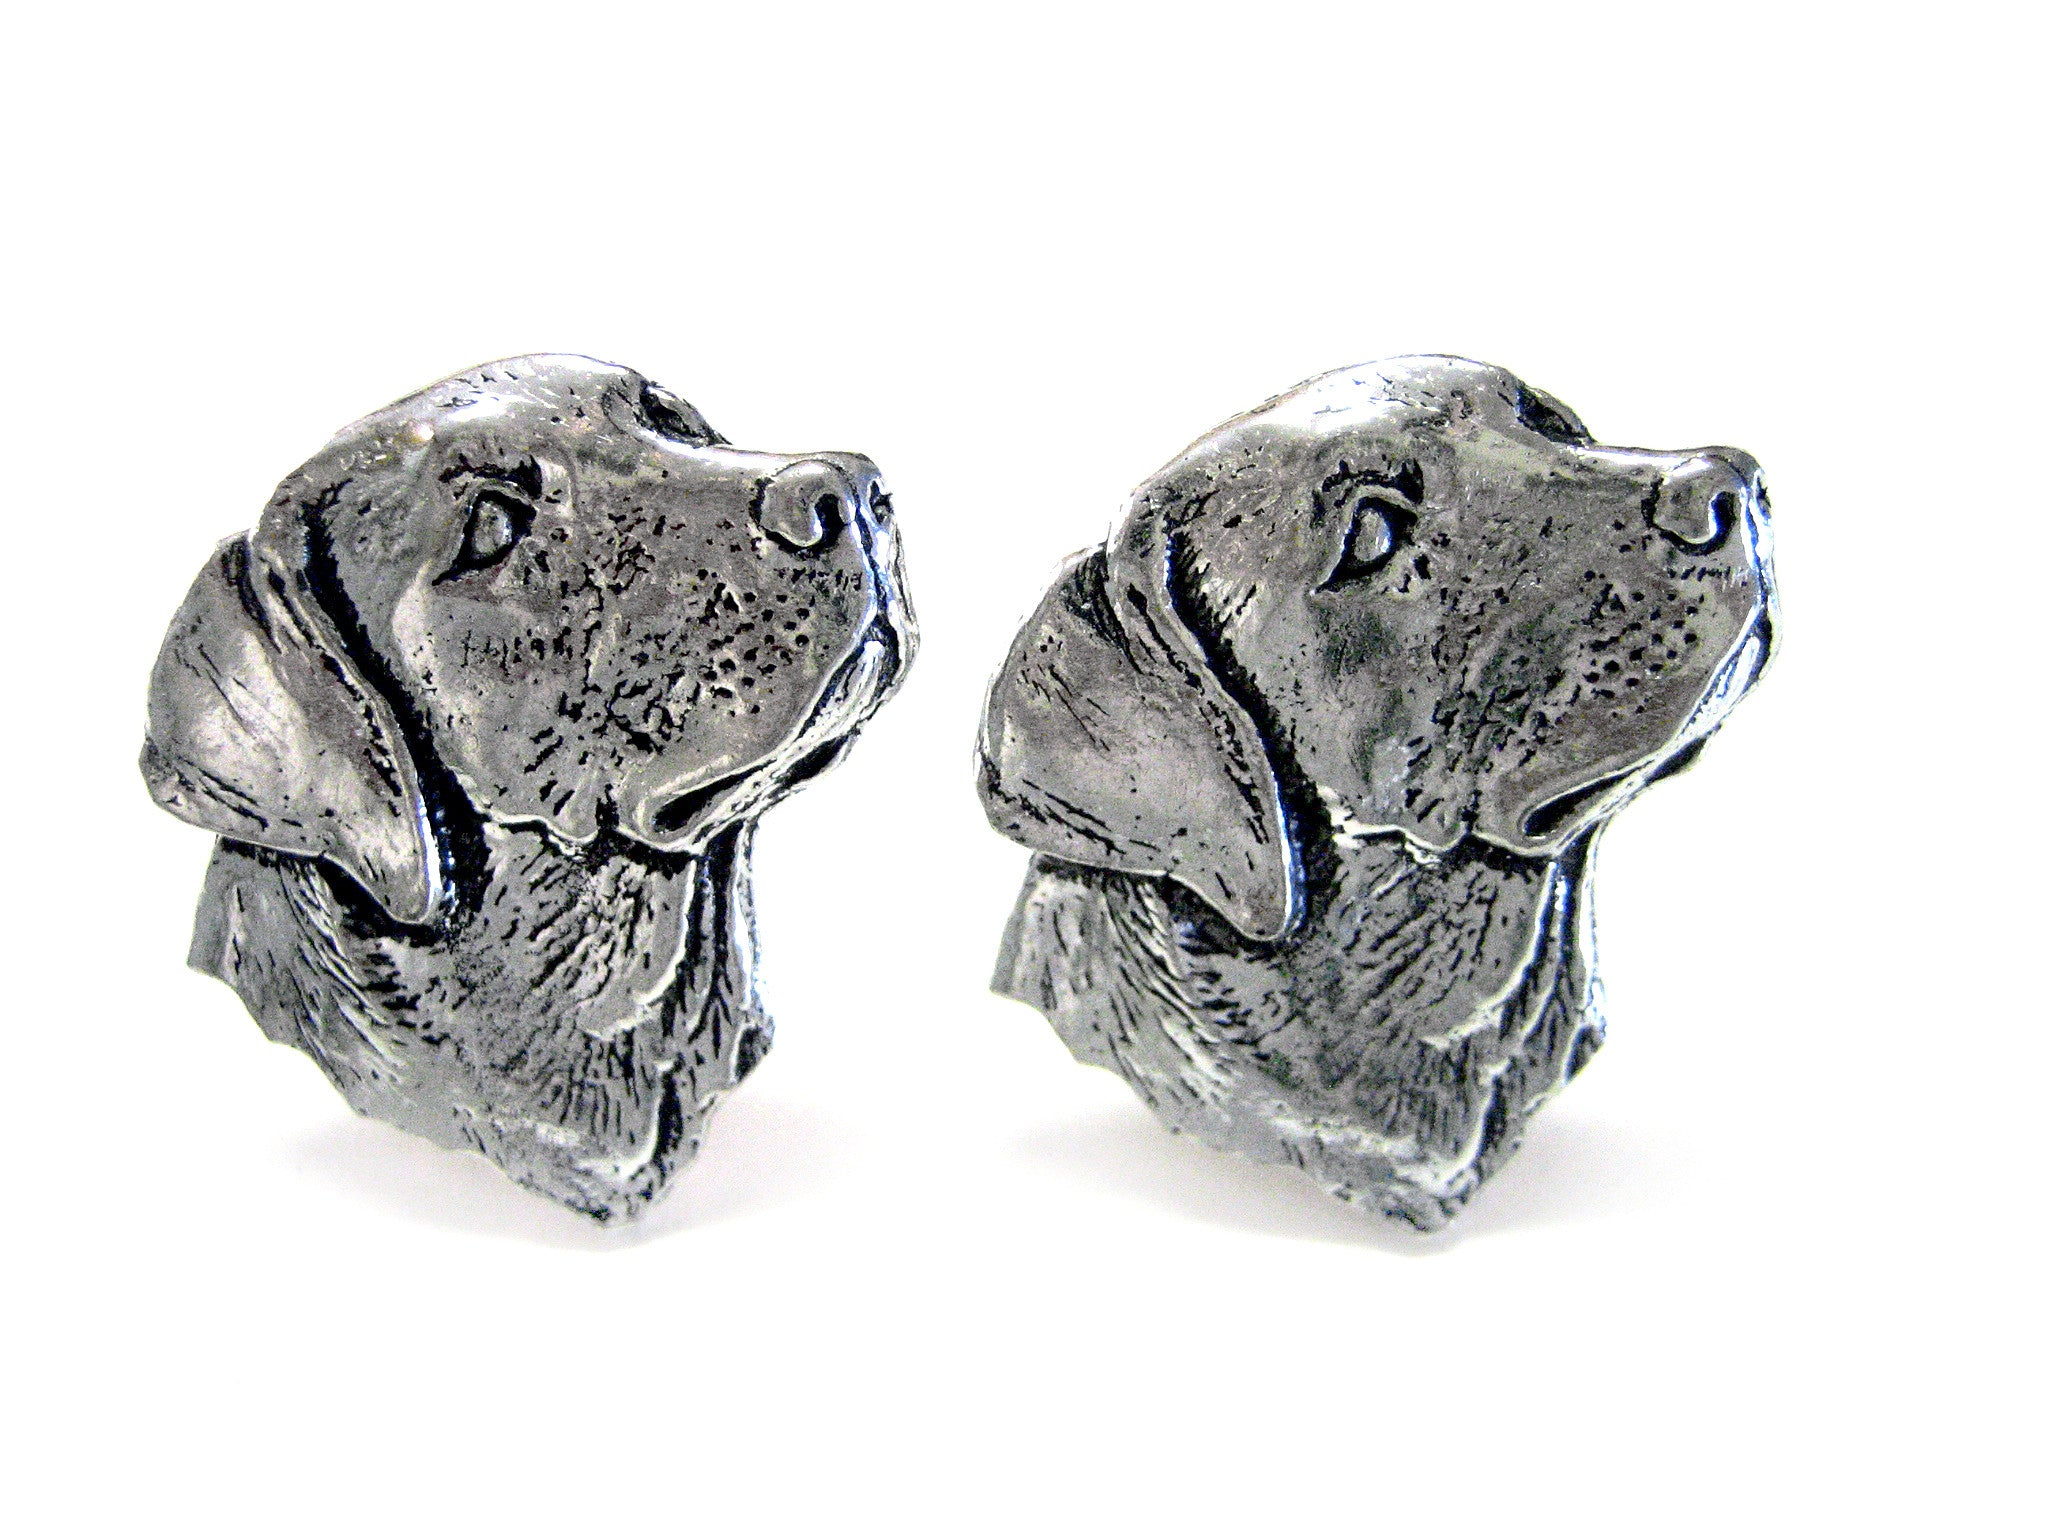 Labrador Dog Head Cufflinks